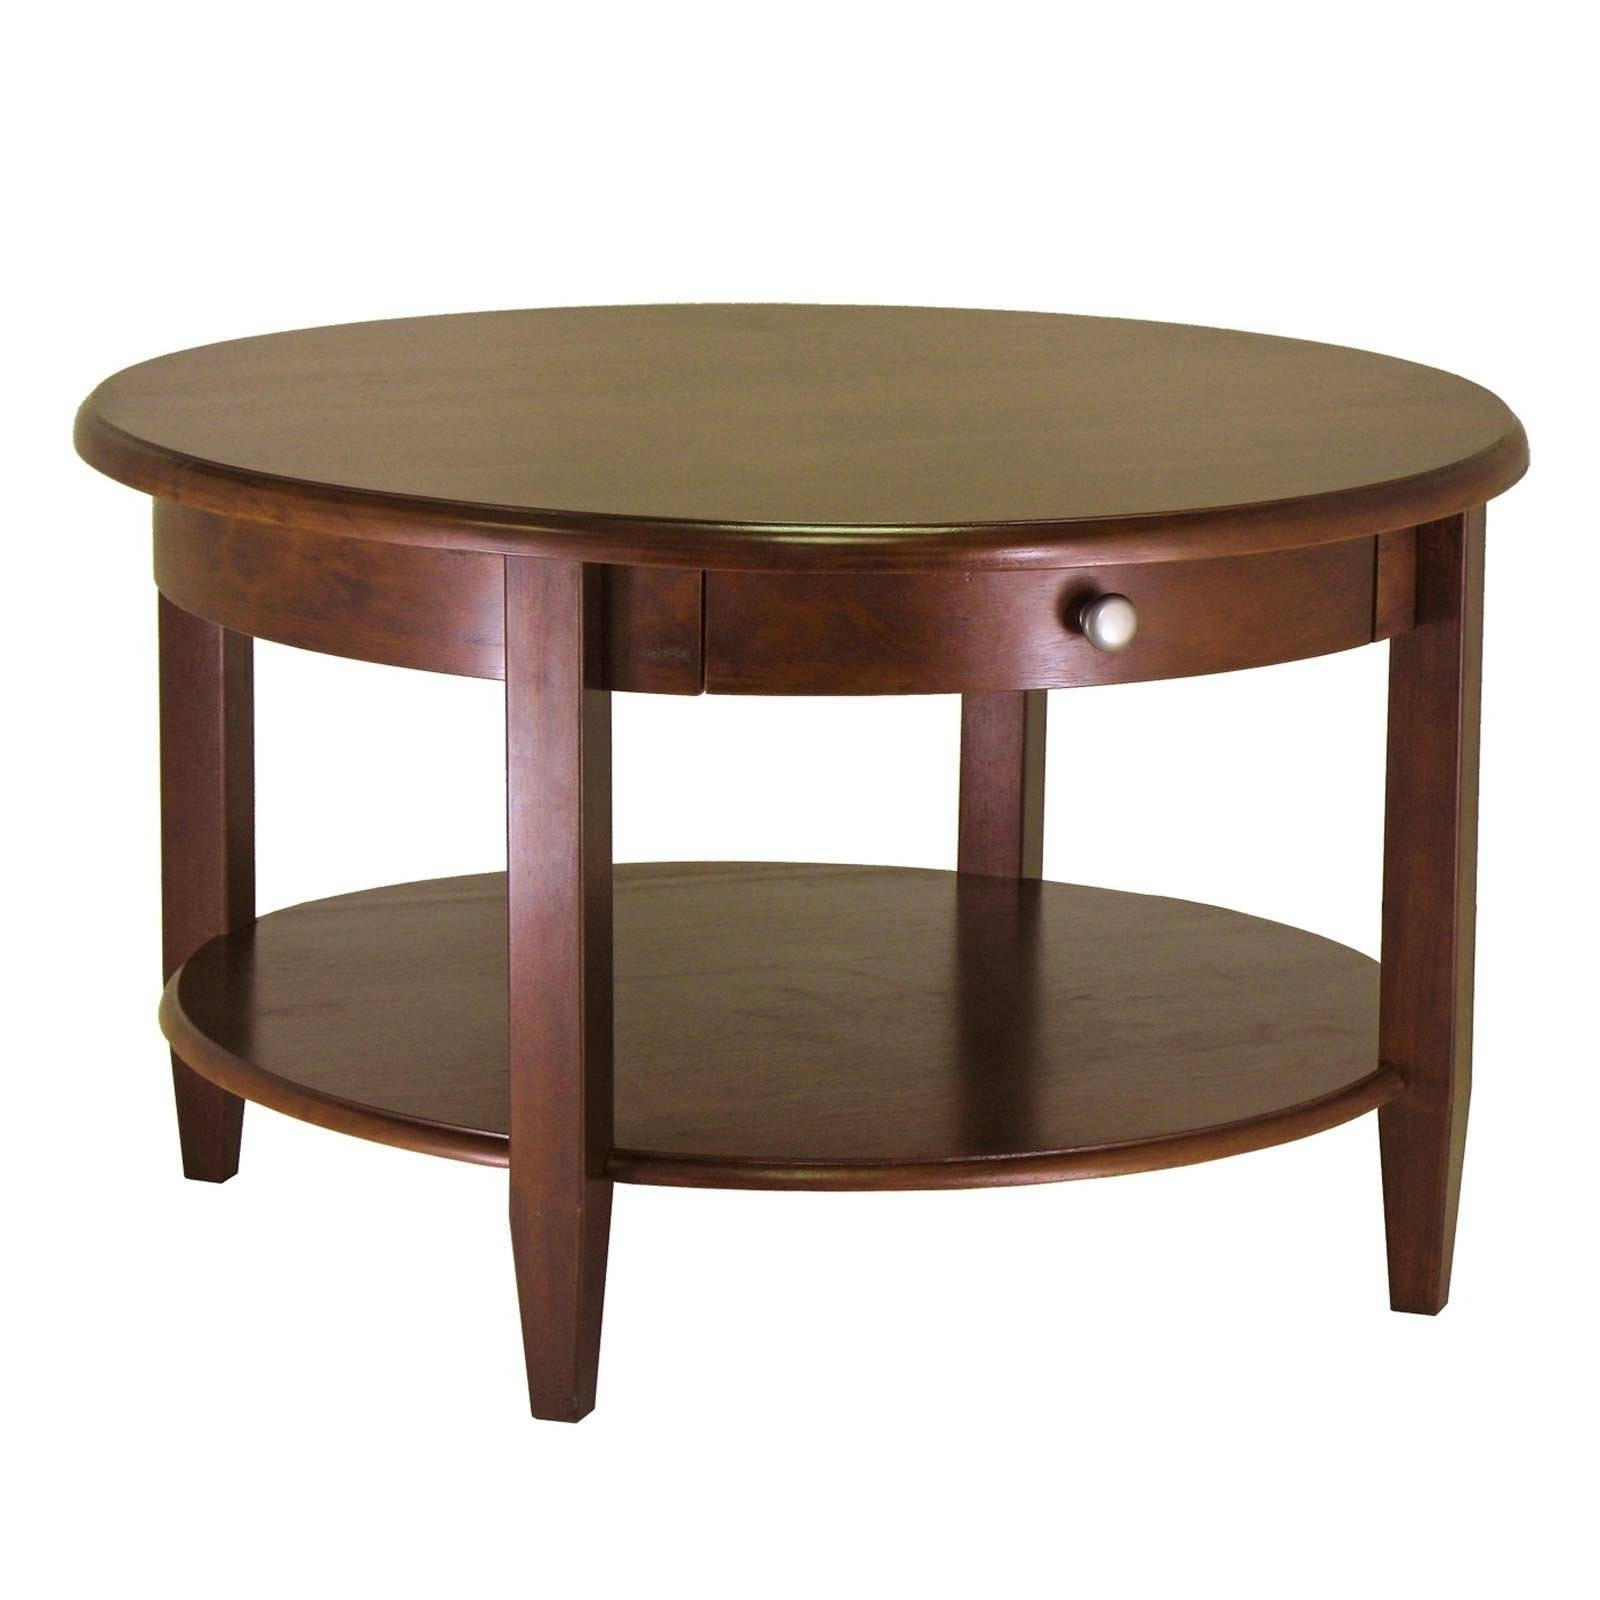 Table : Round Glass Coffee Table With Wood Base Cabin Entry Modern in Kids Coffee Tables (Image 24 of 30)